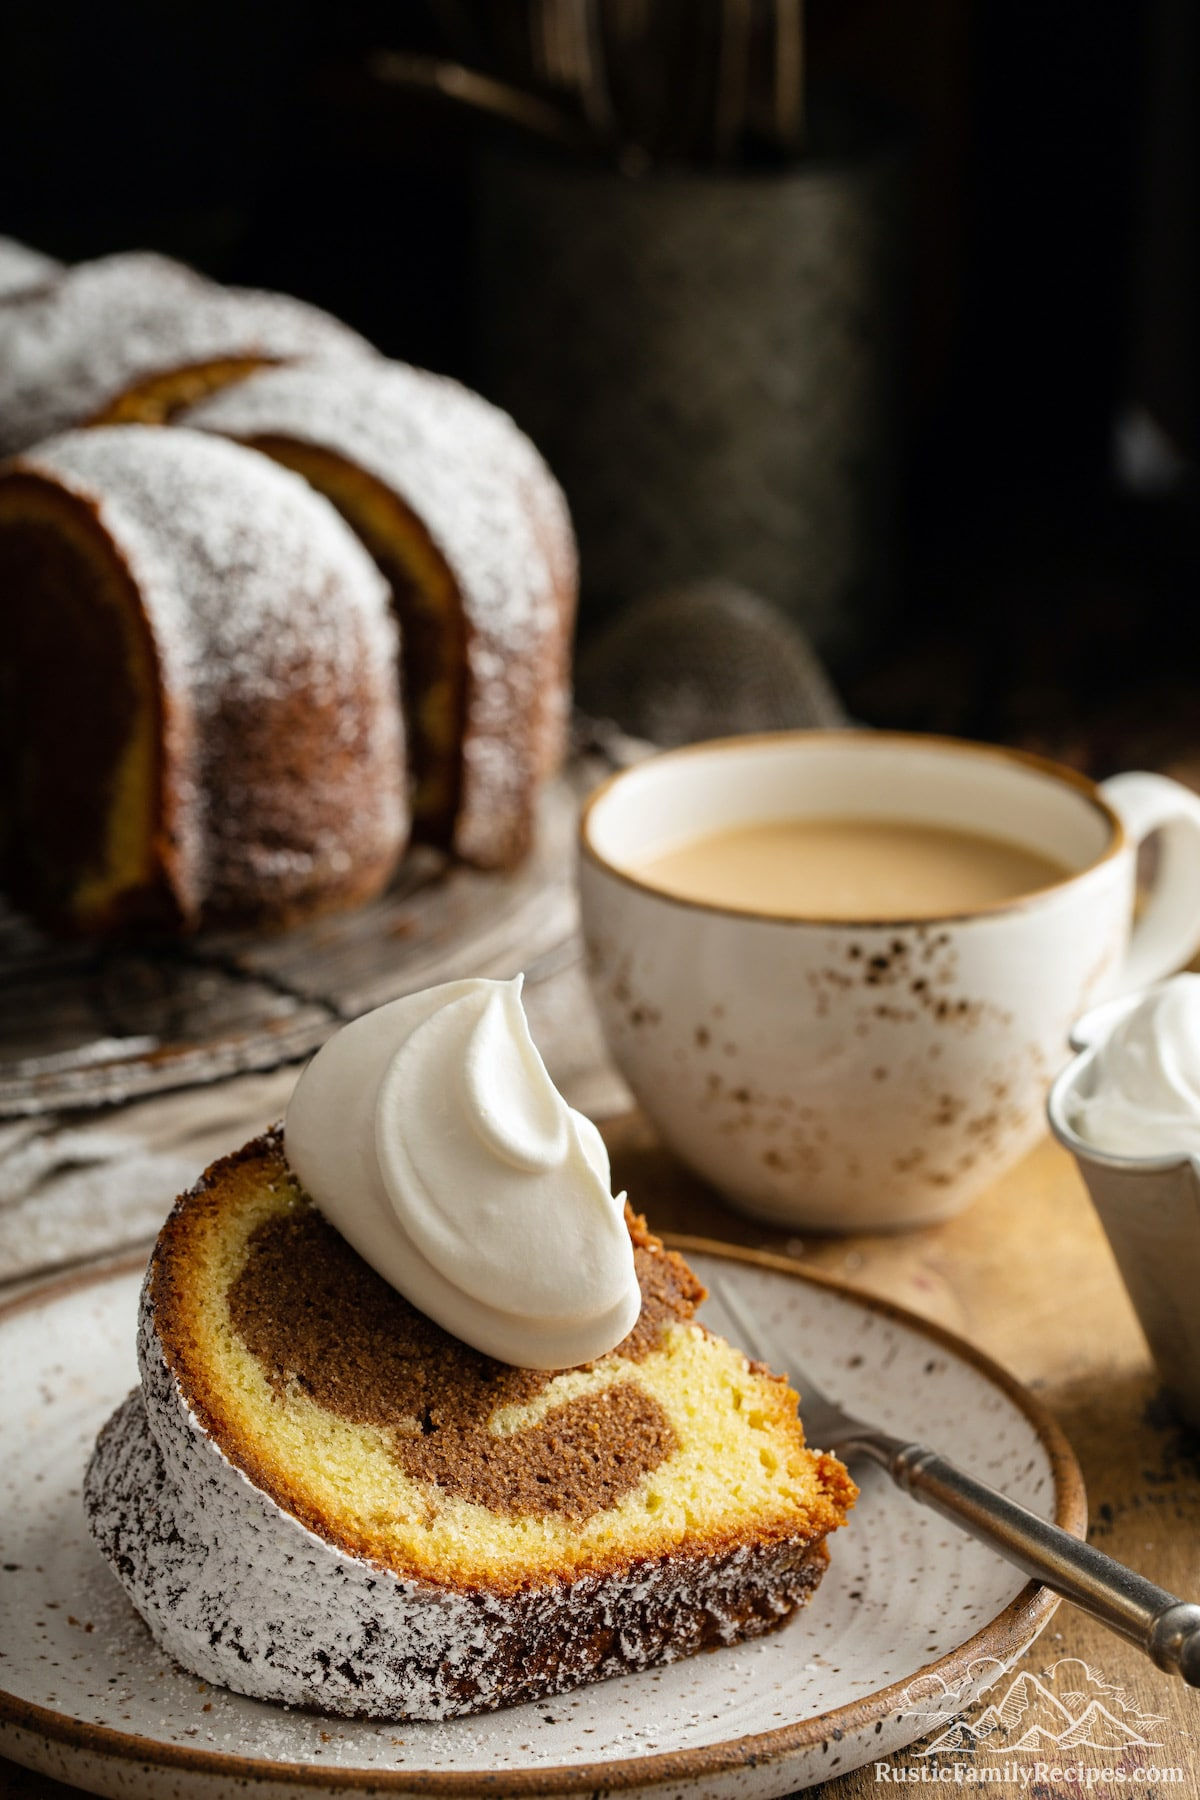 A slice of marble cake topped with a dollop of whipped cream and served with coffee.